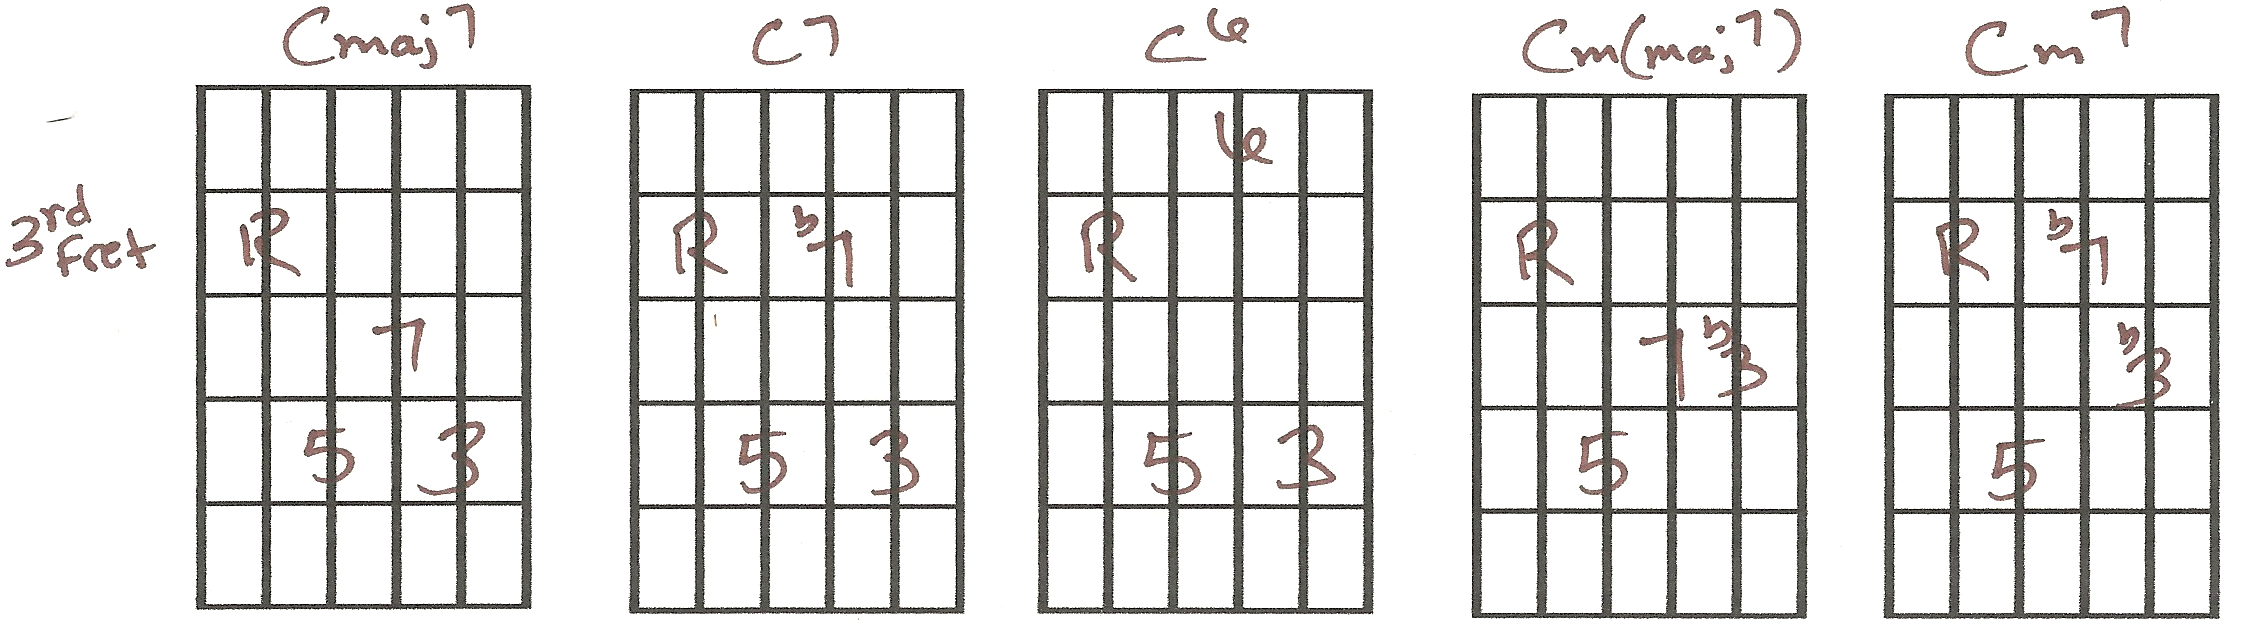 C M Guitar Chord Create Your Own Chord Book Gary Lee